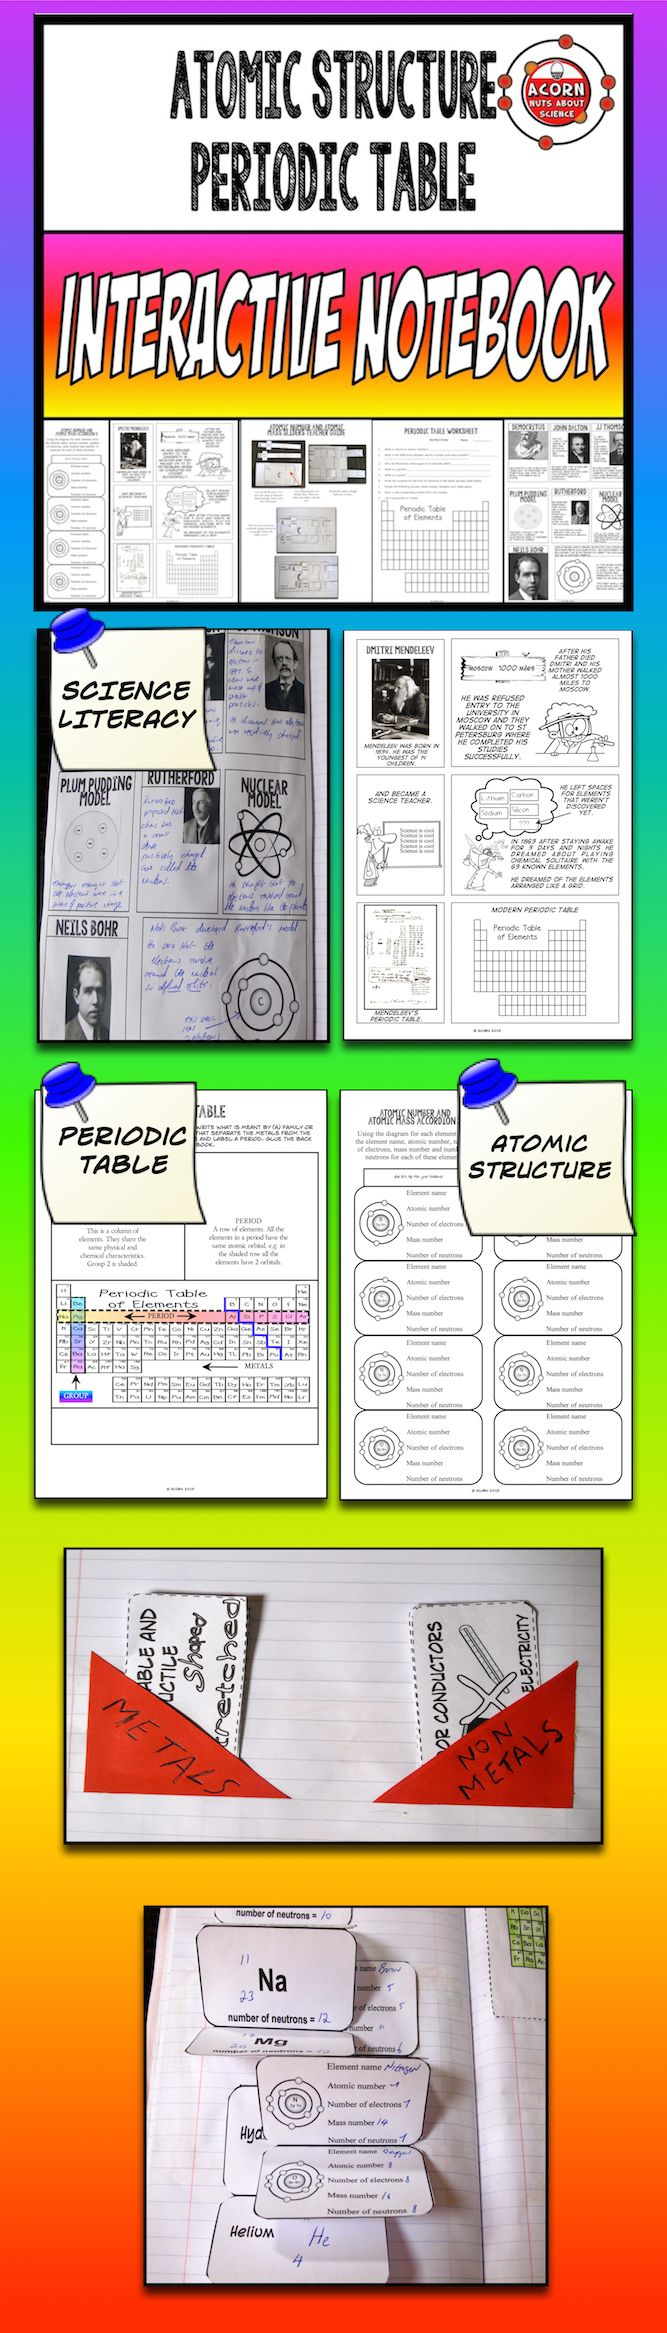 Atom structure periodic table interactive notebook periodic table atom structure periodic table interactive notebook urtaz Choice Image